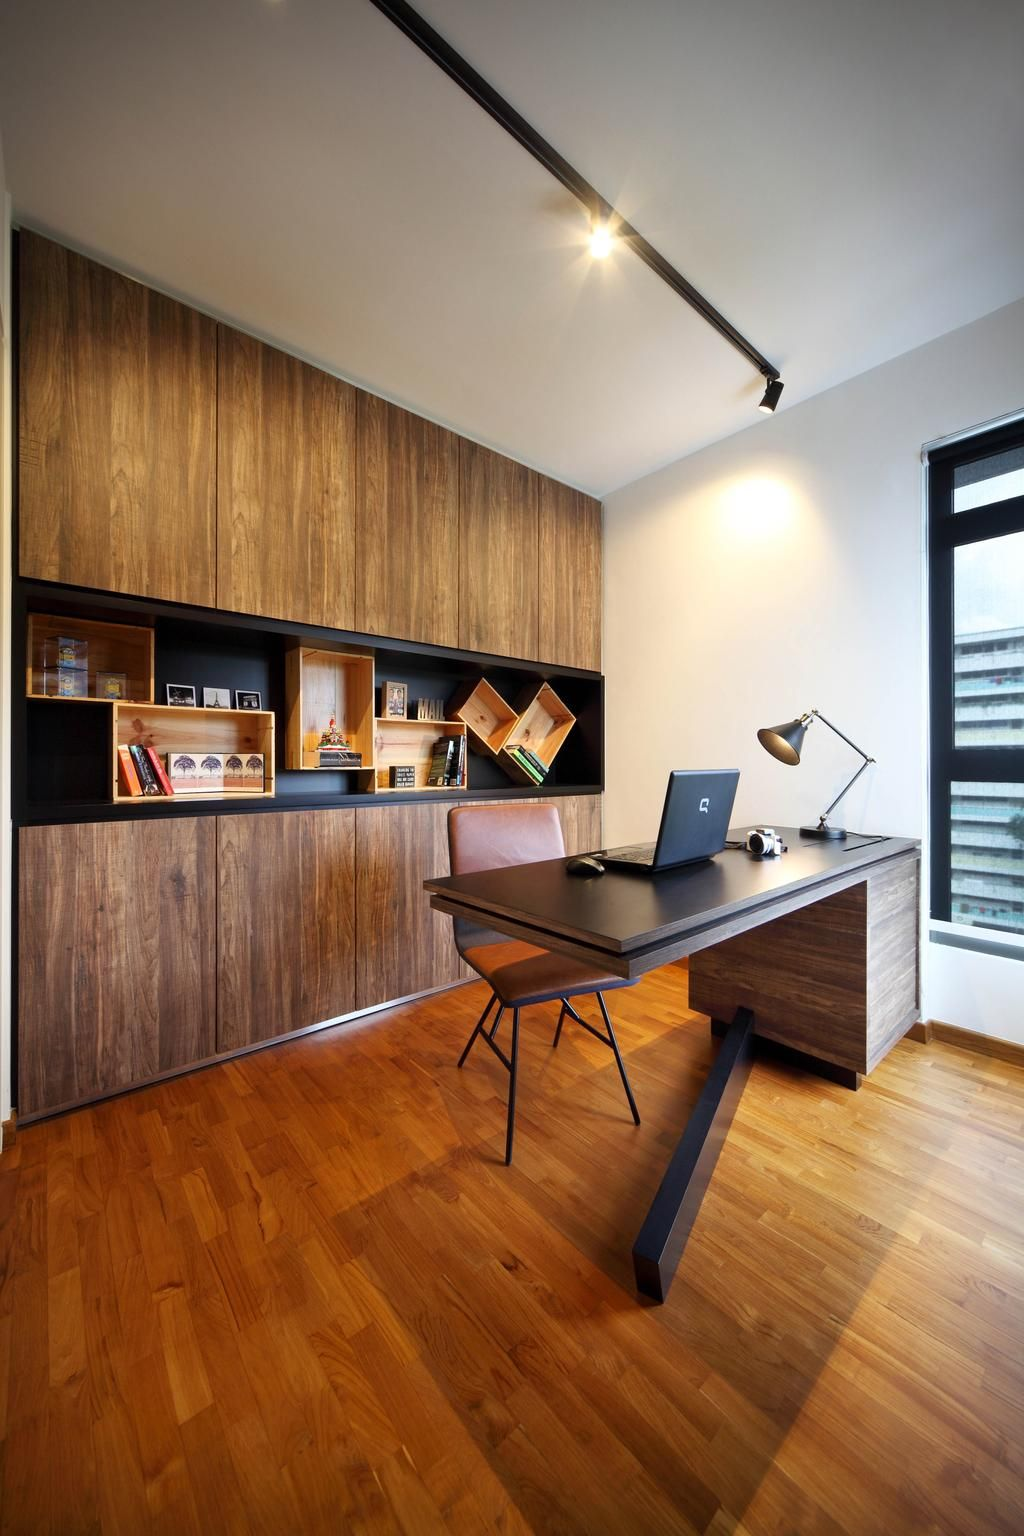 Hdb Study Room Design Ideas: Check Out This Eclectic-style HDB Study And Other Similar